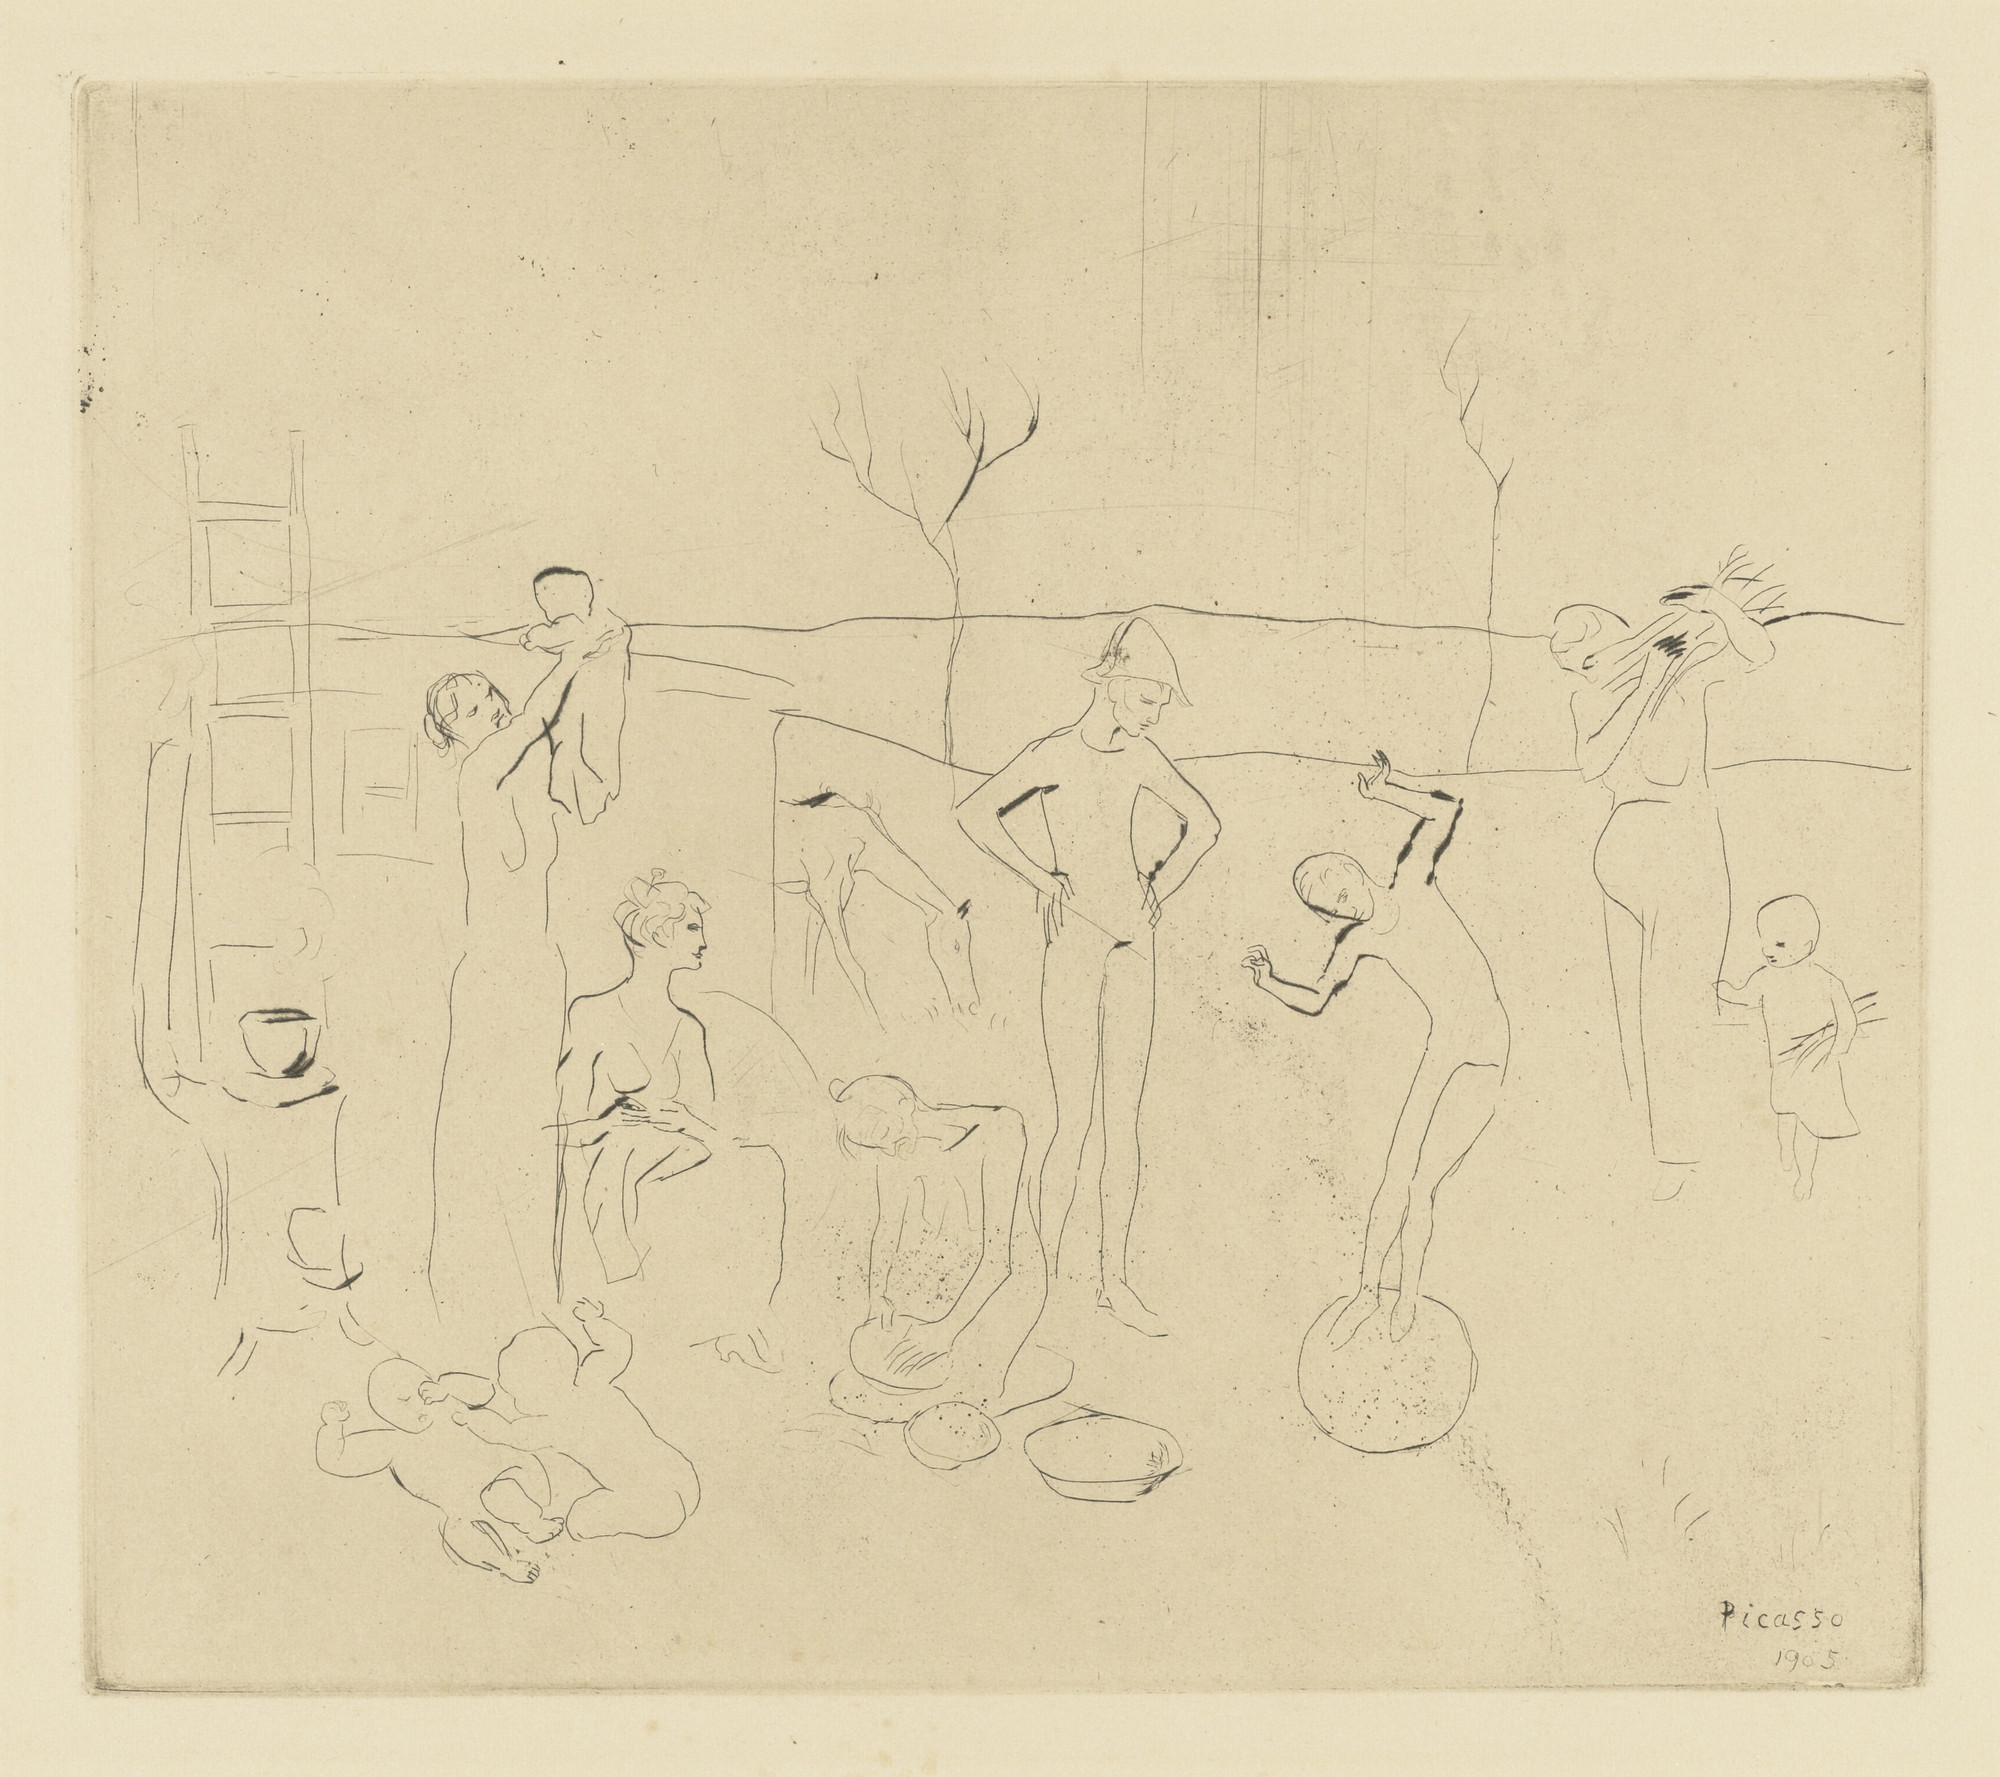 Pablo Picasso. The Acrobats (Les Saltimbanques) from the Saltimbanques series. 1905, published 1913